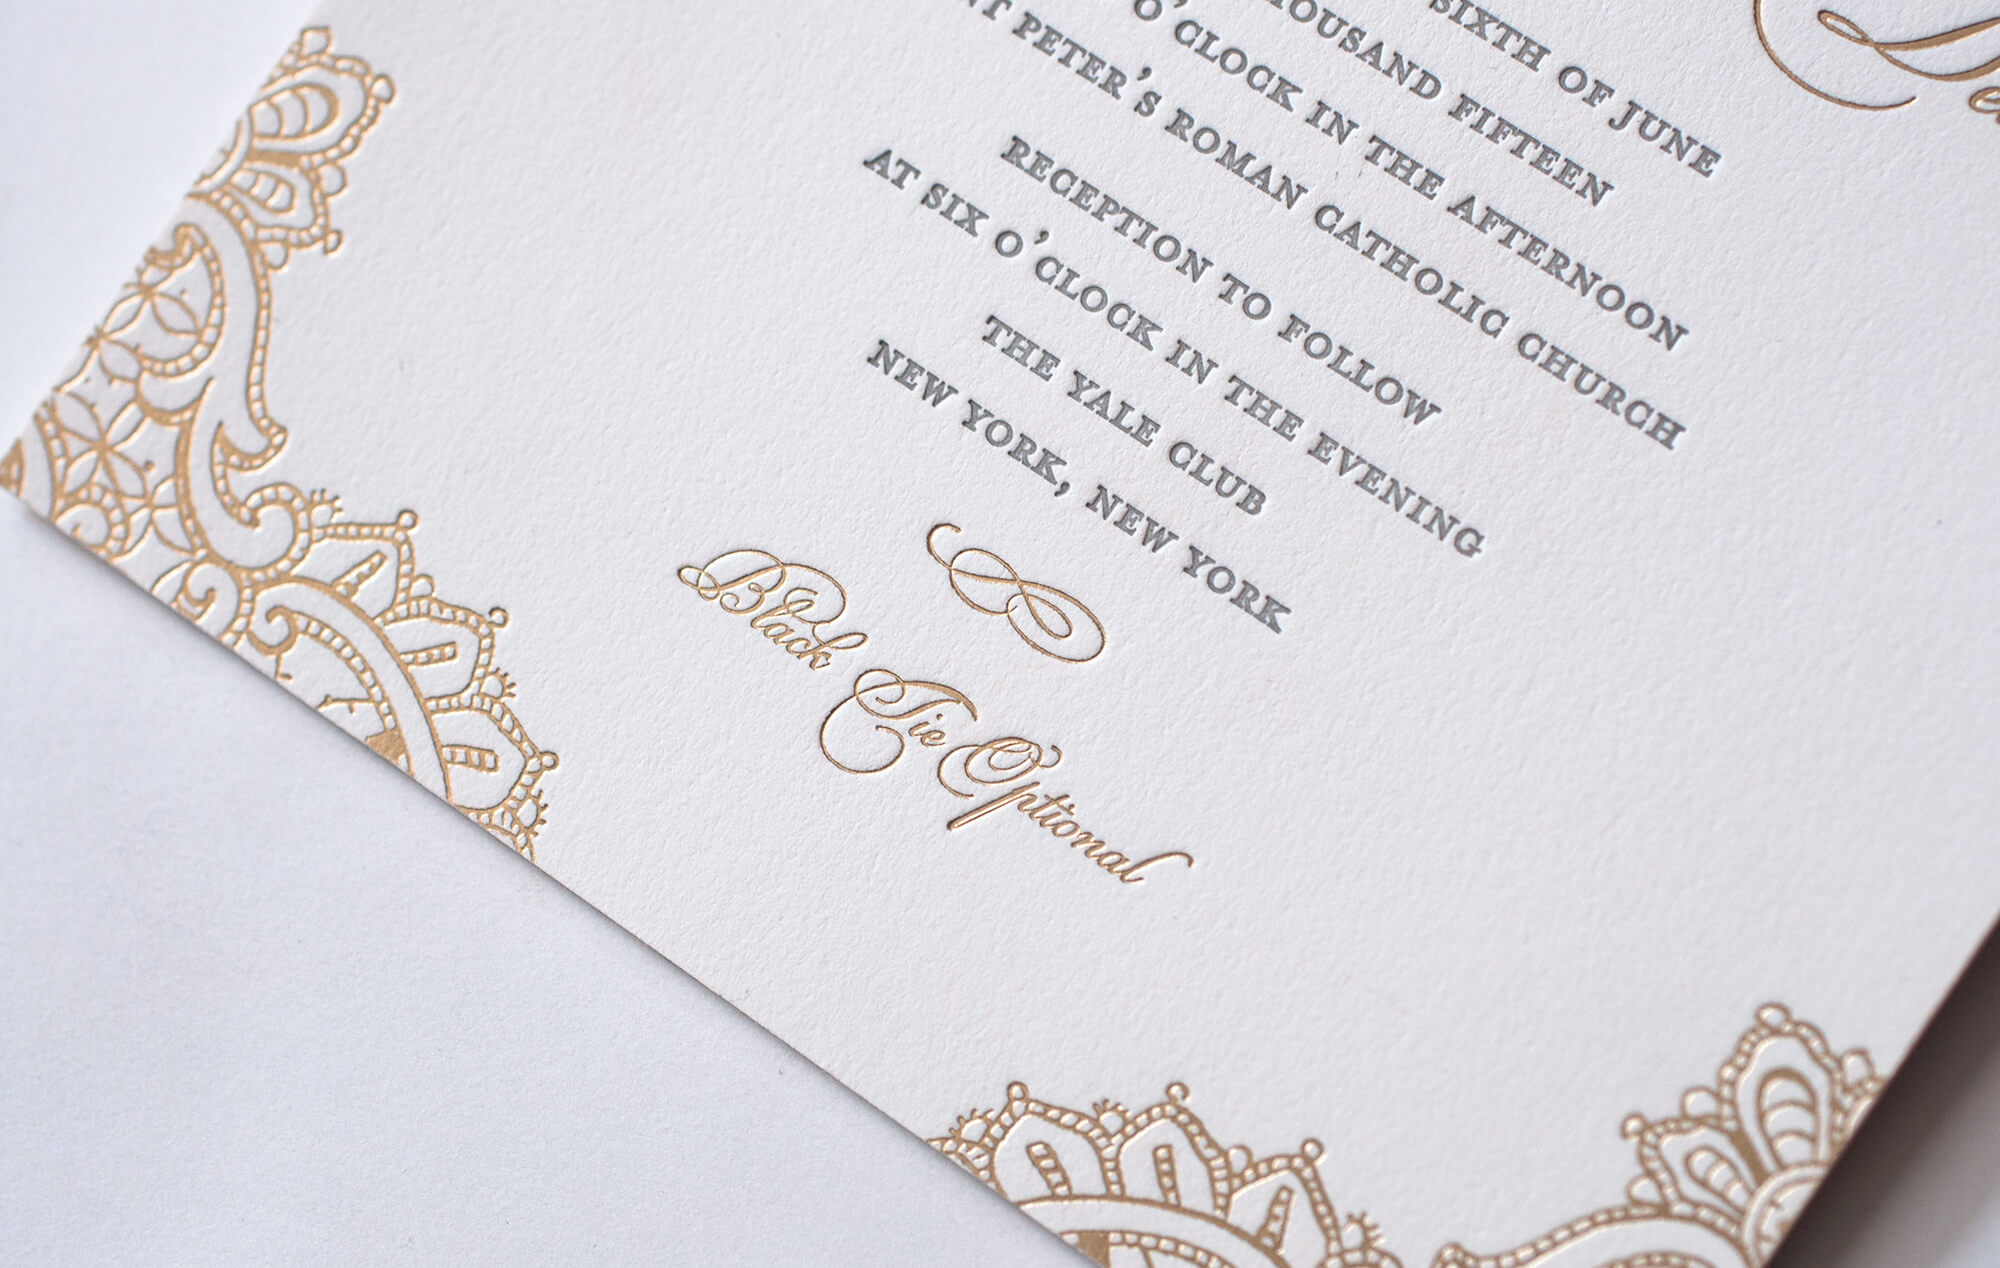 Letterpress and gold foil typography